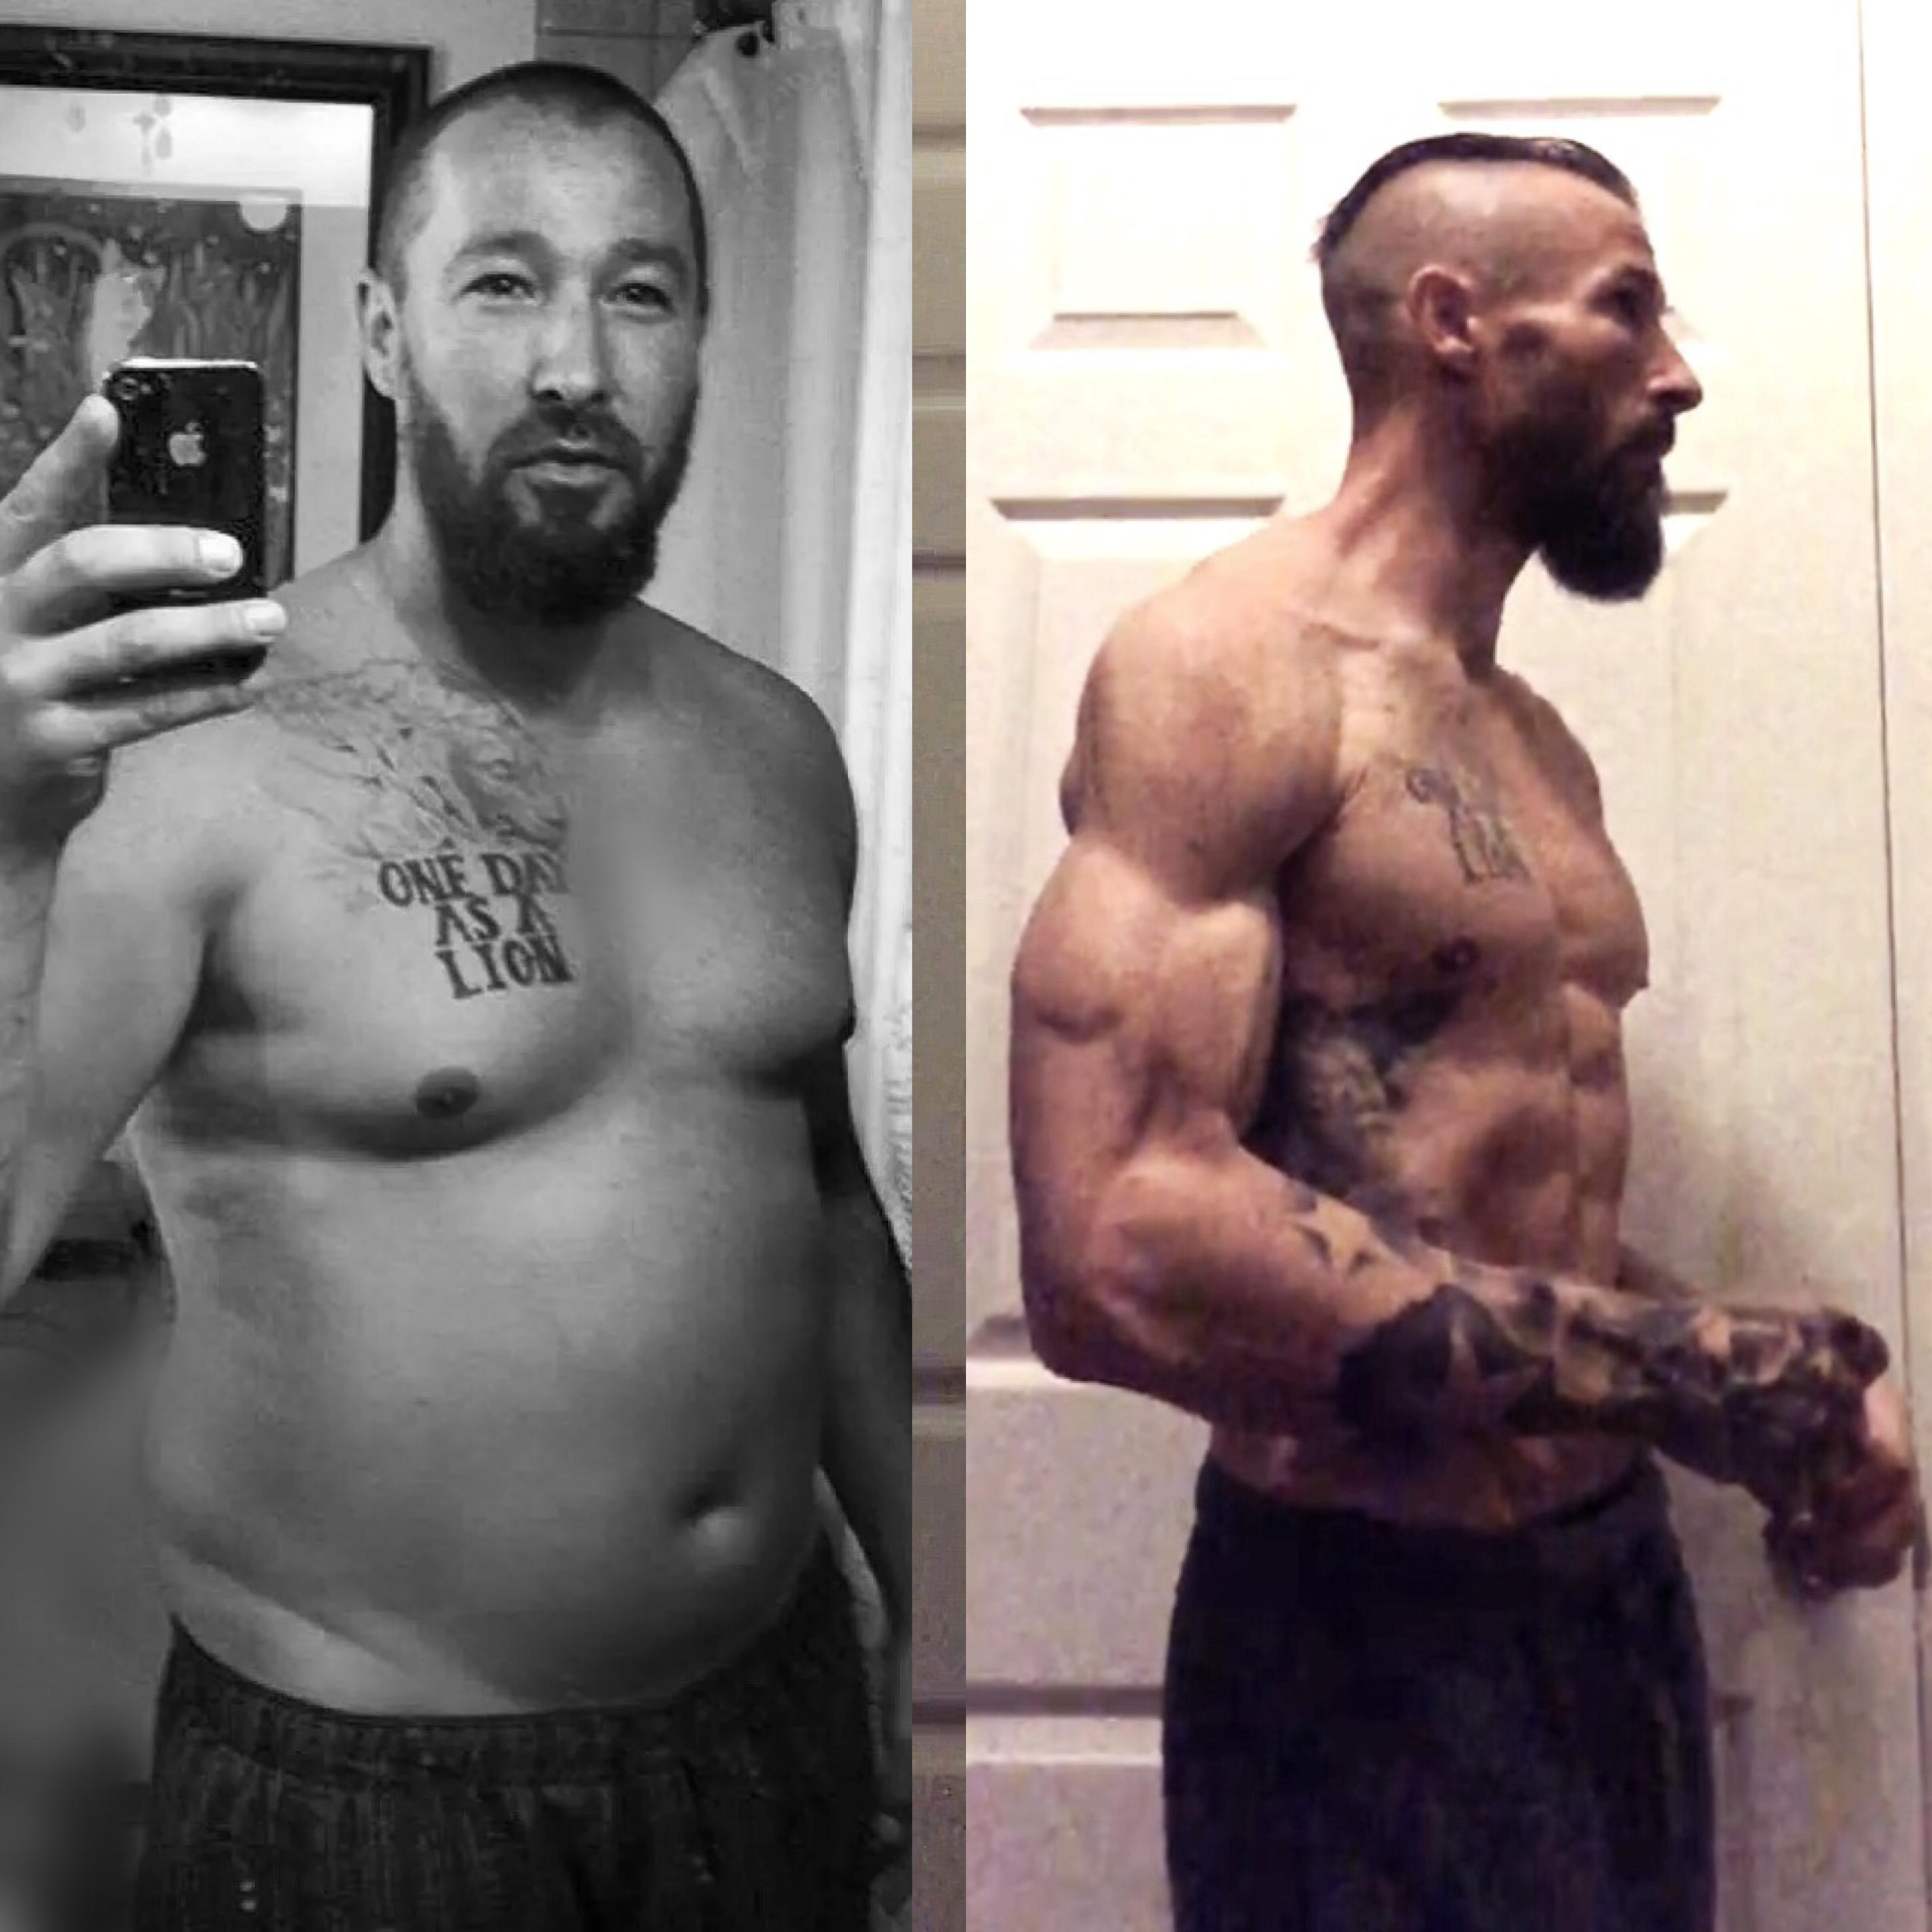 Dad Drops 70lbs To Become A Shredded MMA Fighter After Divorce mnoHHO7